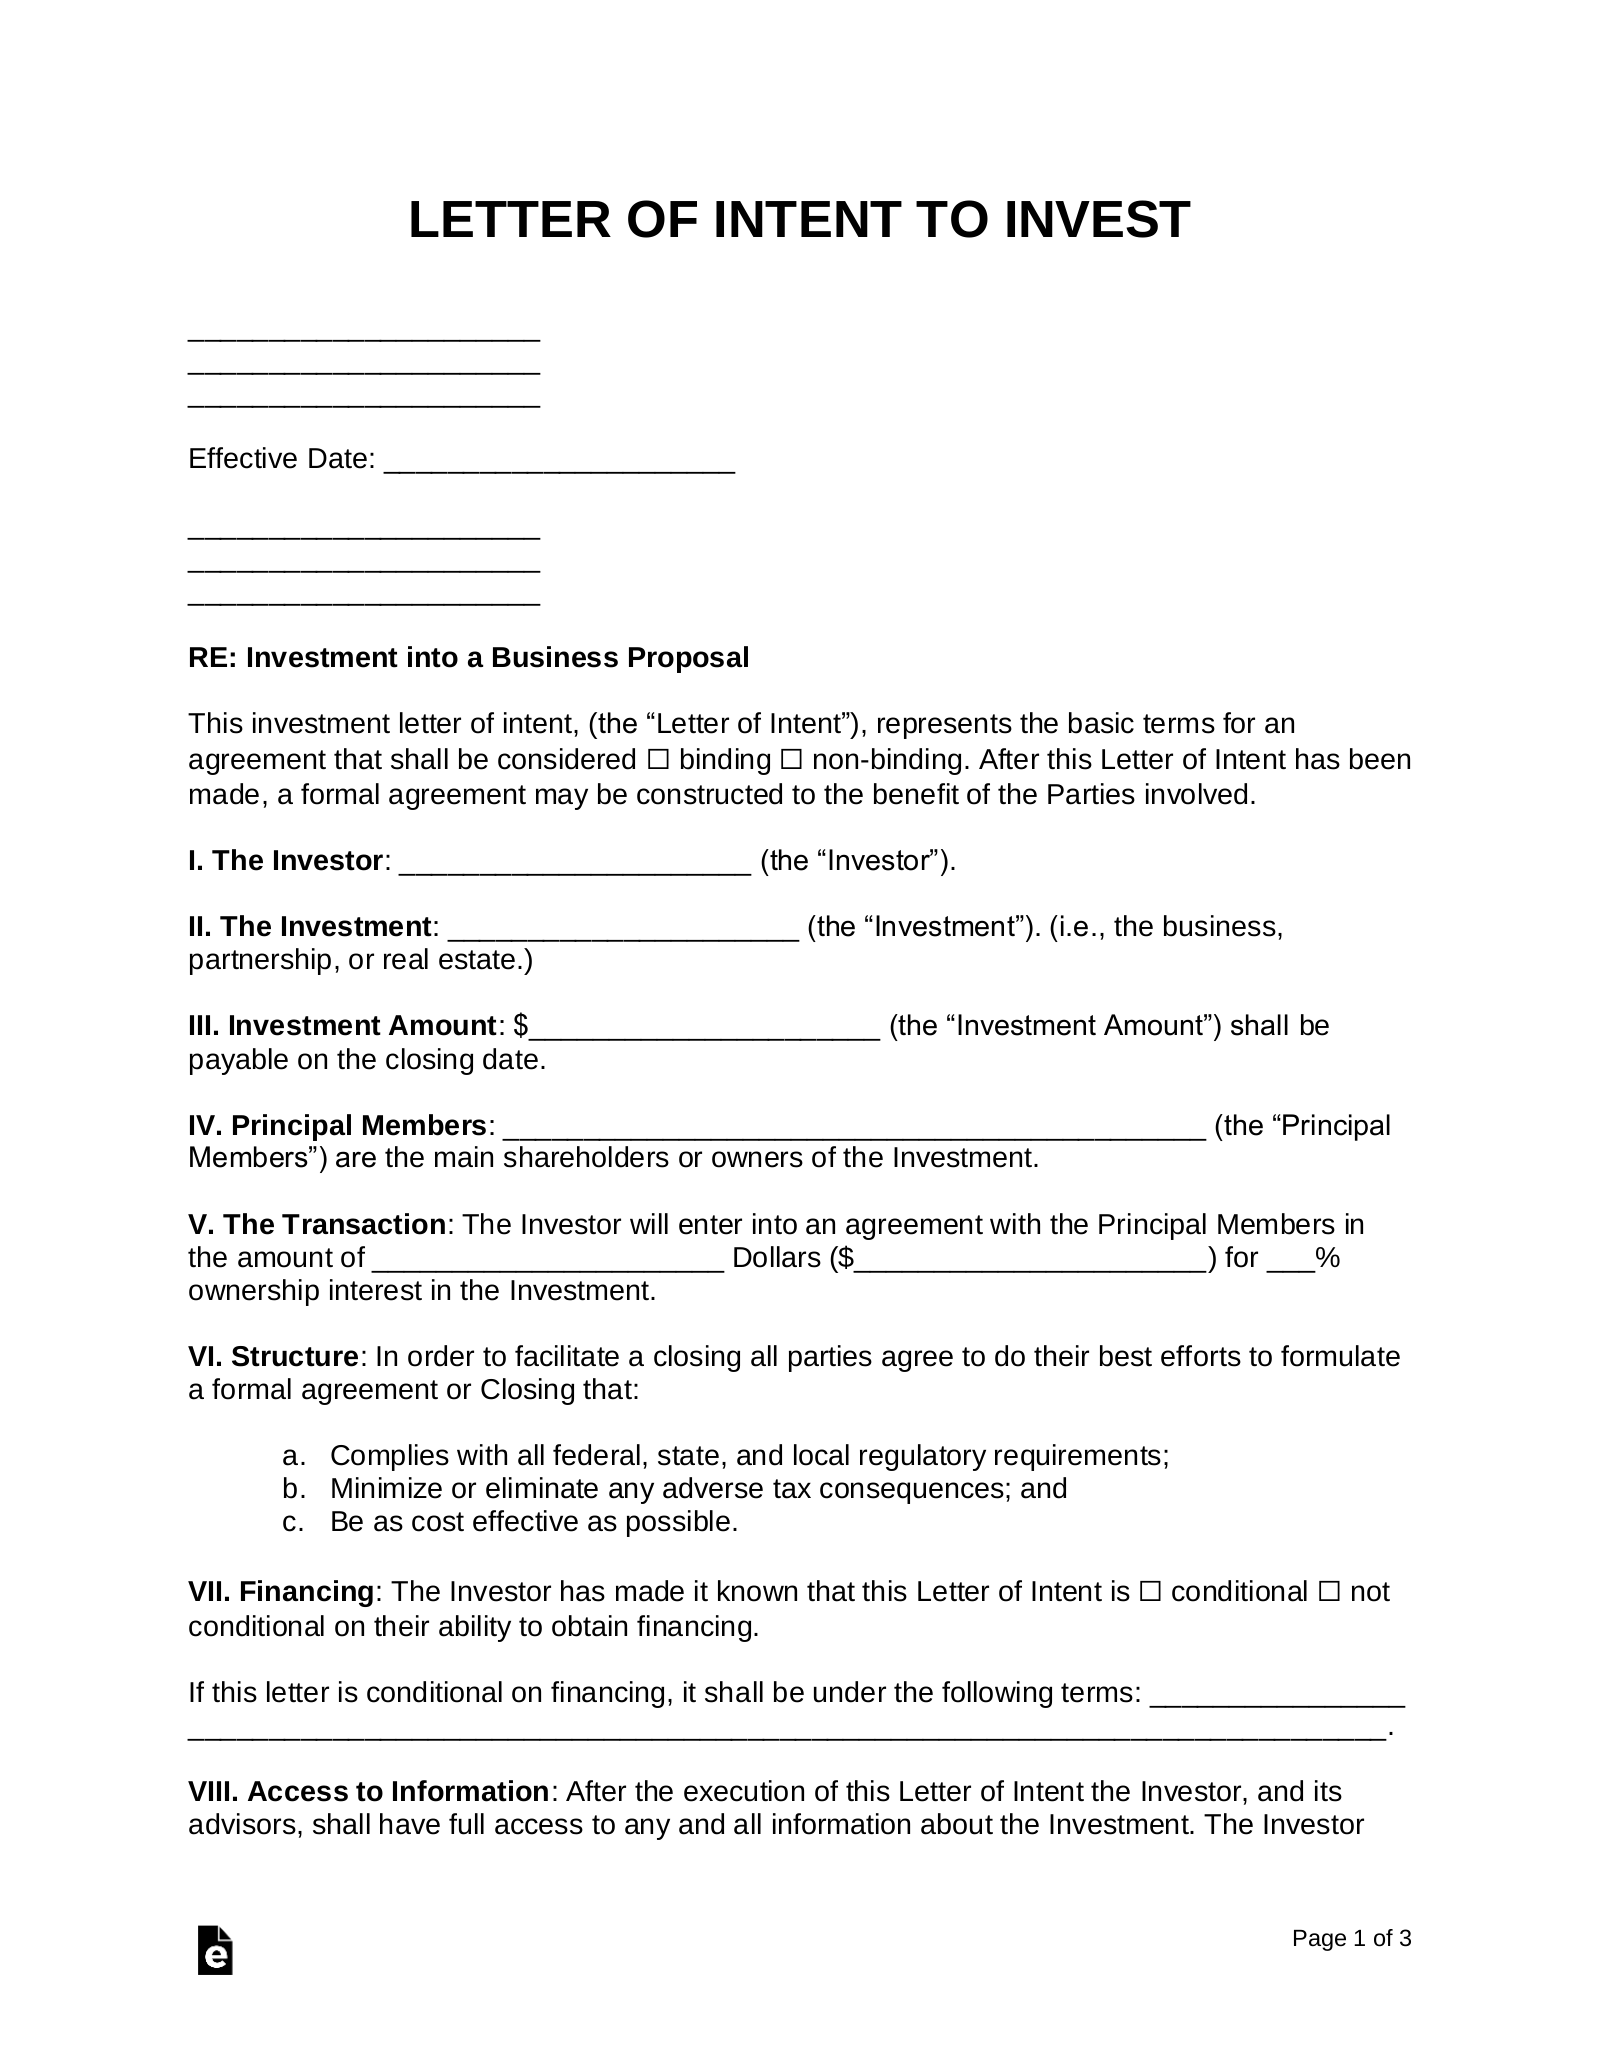 Free Business Proposal (Investment) Letter of Intent Template